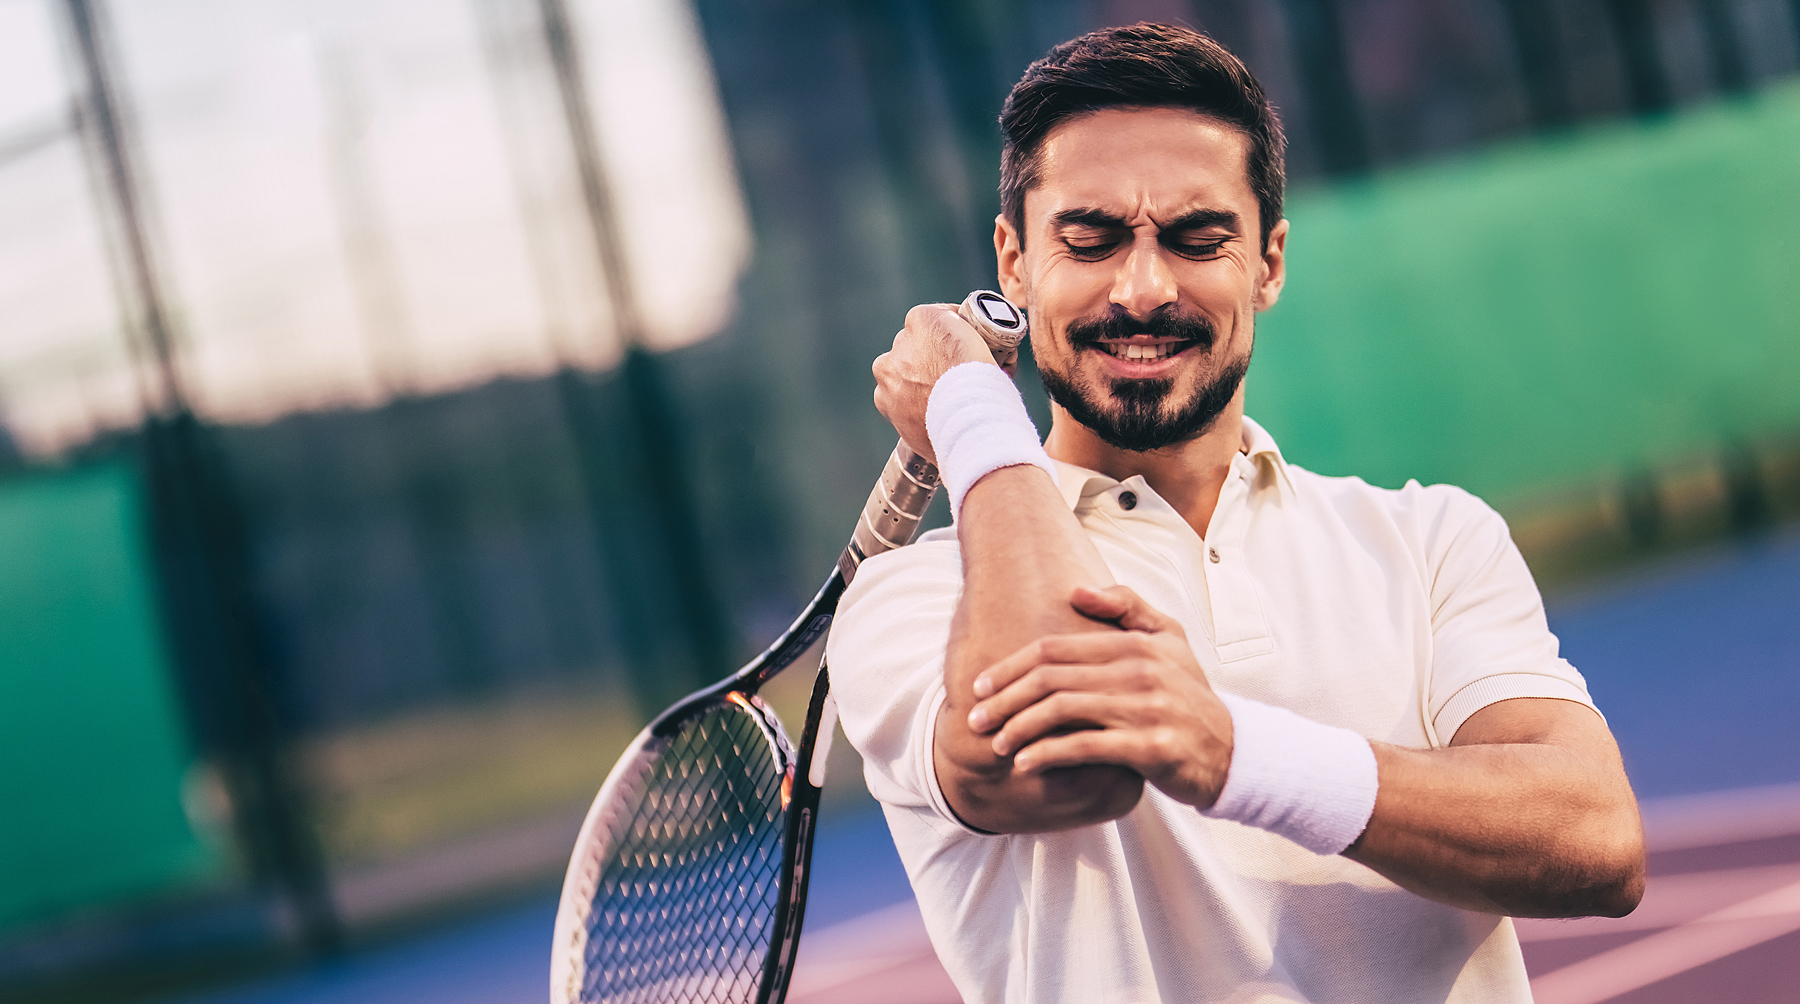 man on tennis court with racket in hand grabbing elbow in pain